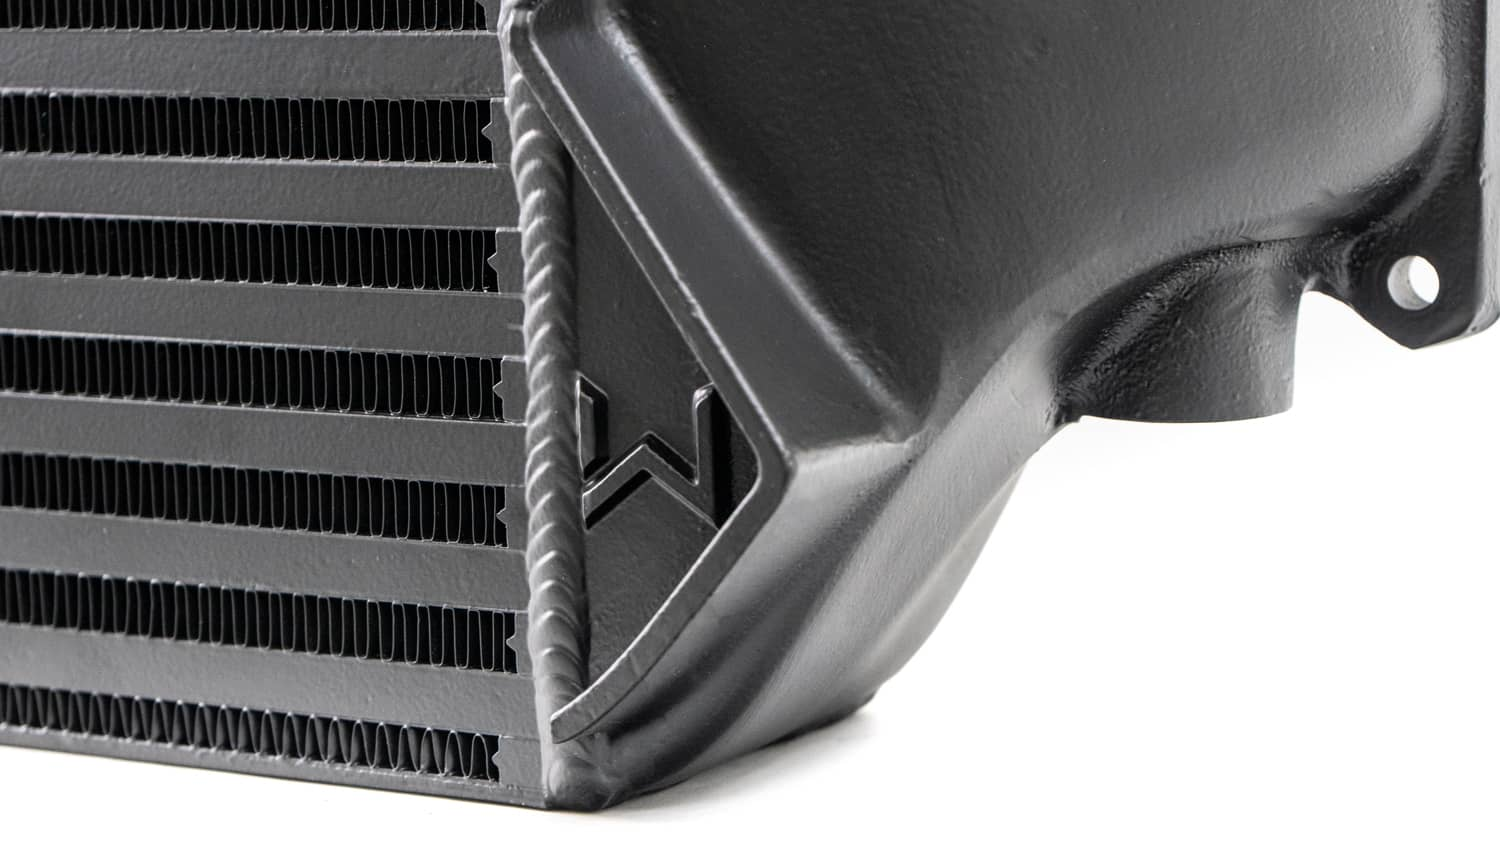 Larger 10.3mm intercooler core runners decrease pressure drop and increase cooling efficiency